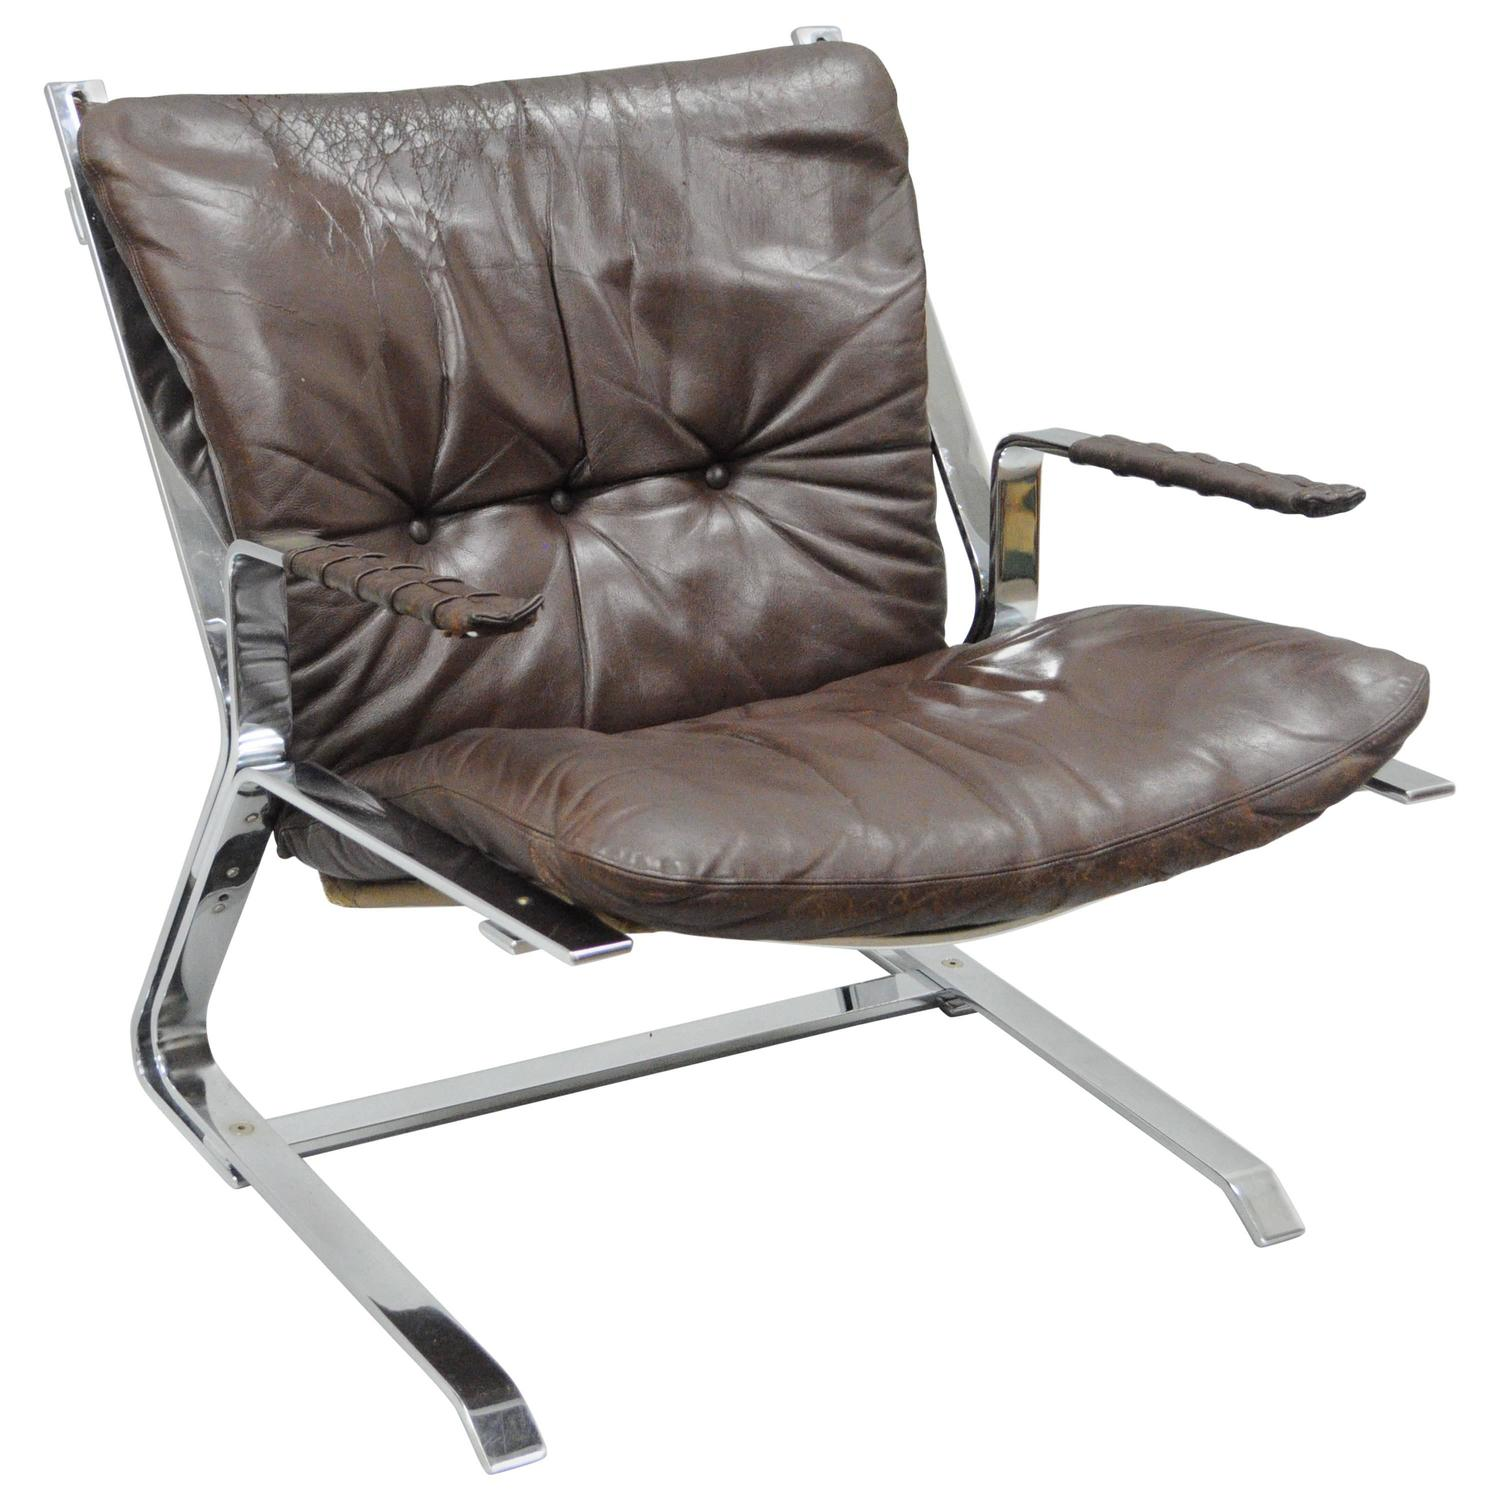 Kengu Pirate Brown Leather Chair Pair Norway For Sale at 1stdibs